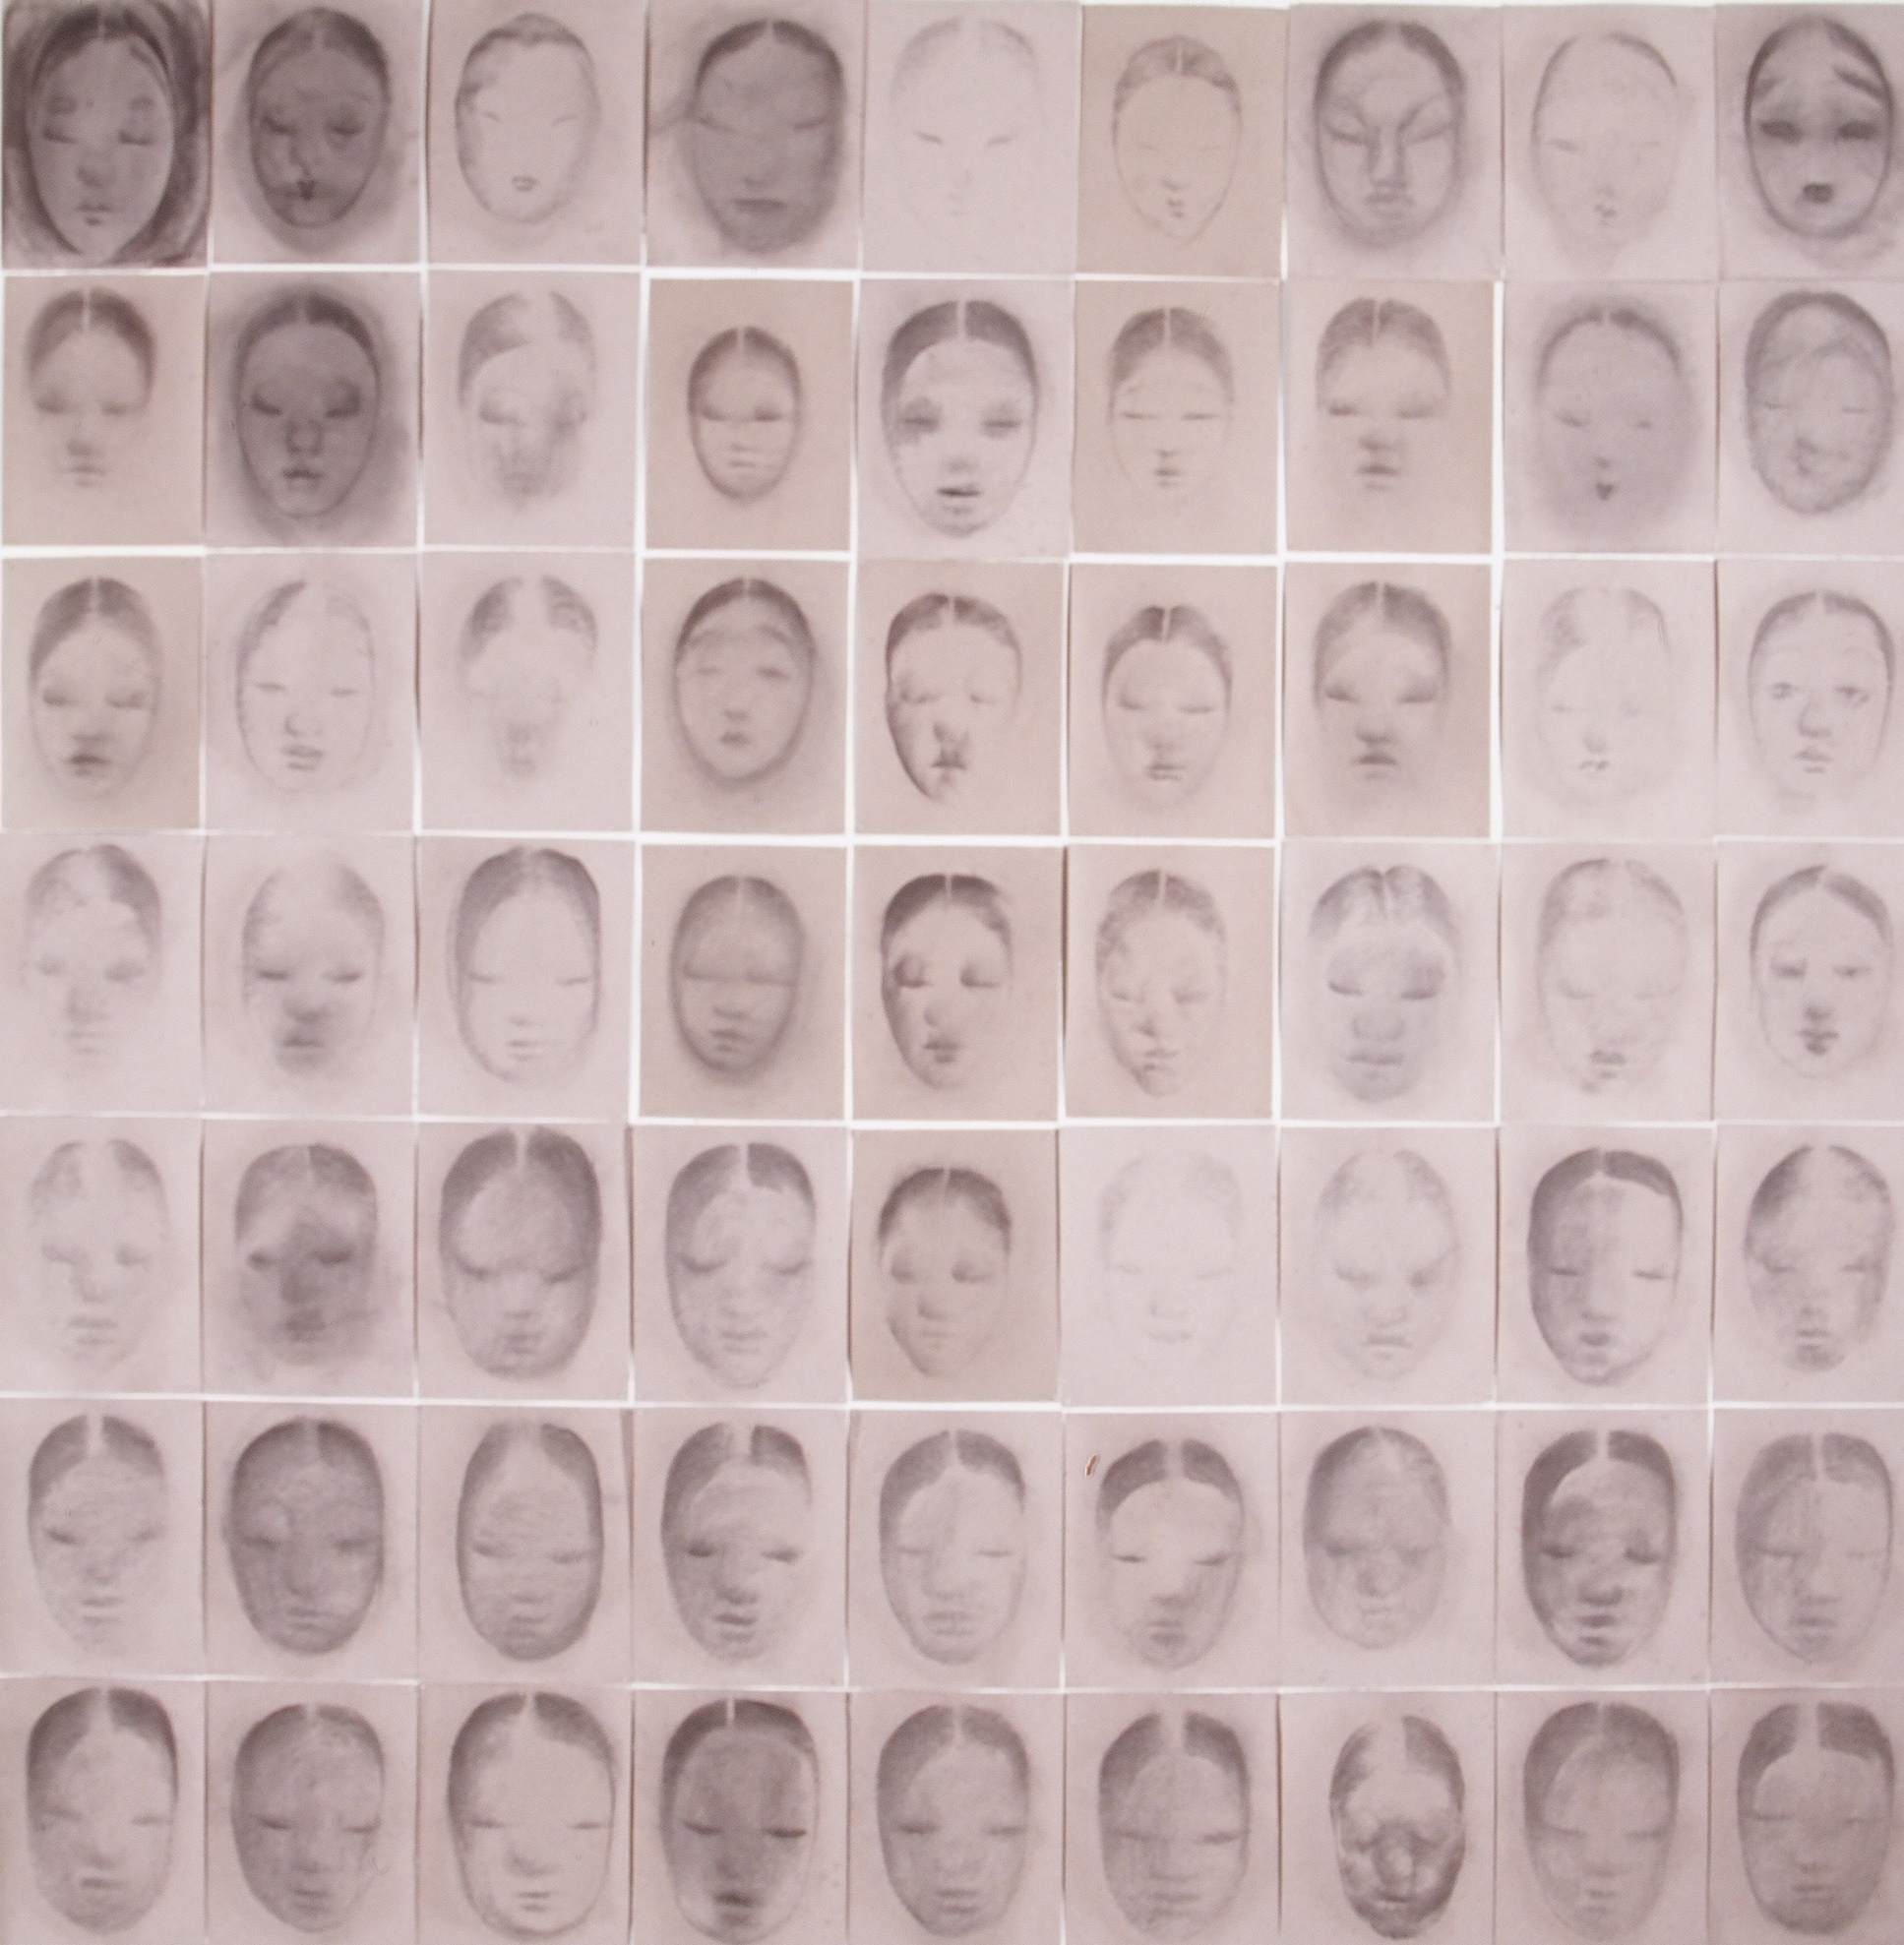 SoHyun Bae, An Ode to the Women of Josun Dynasty, 1997, vine charcoal on tomb's gray paper, (63 panels) 97 x 90 inches